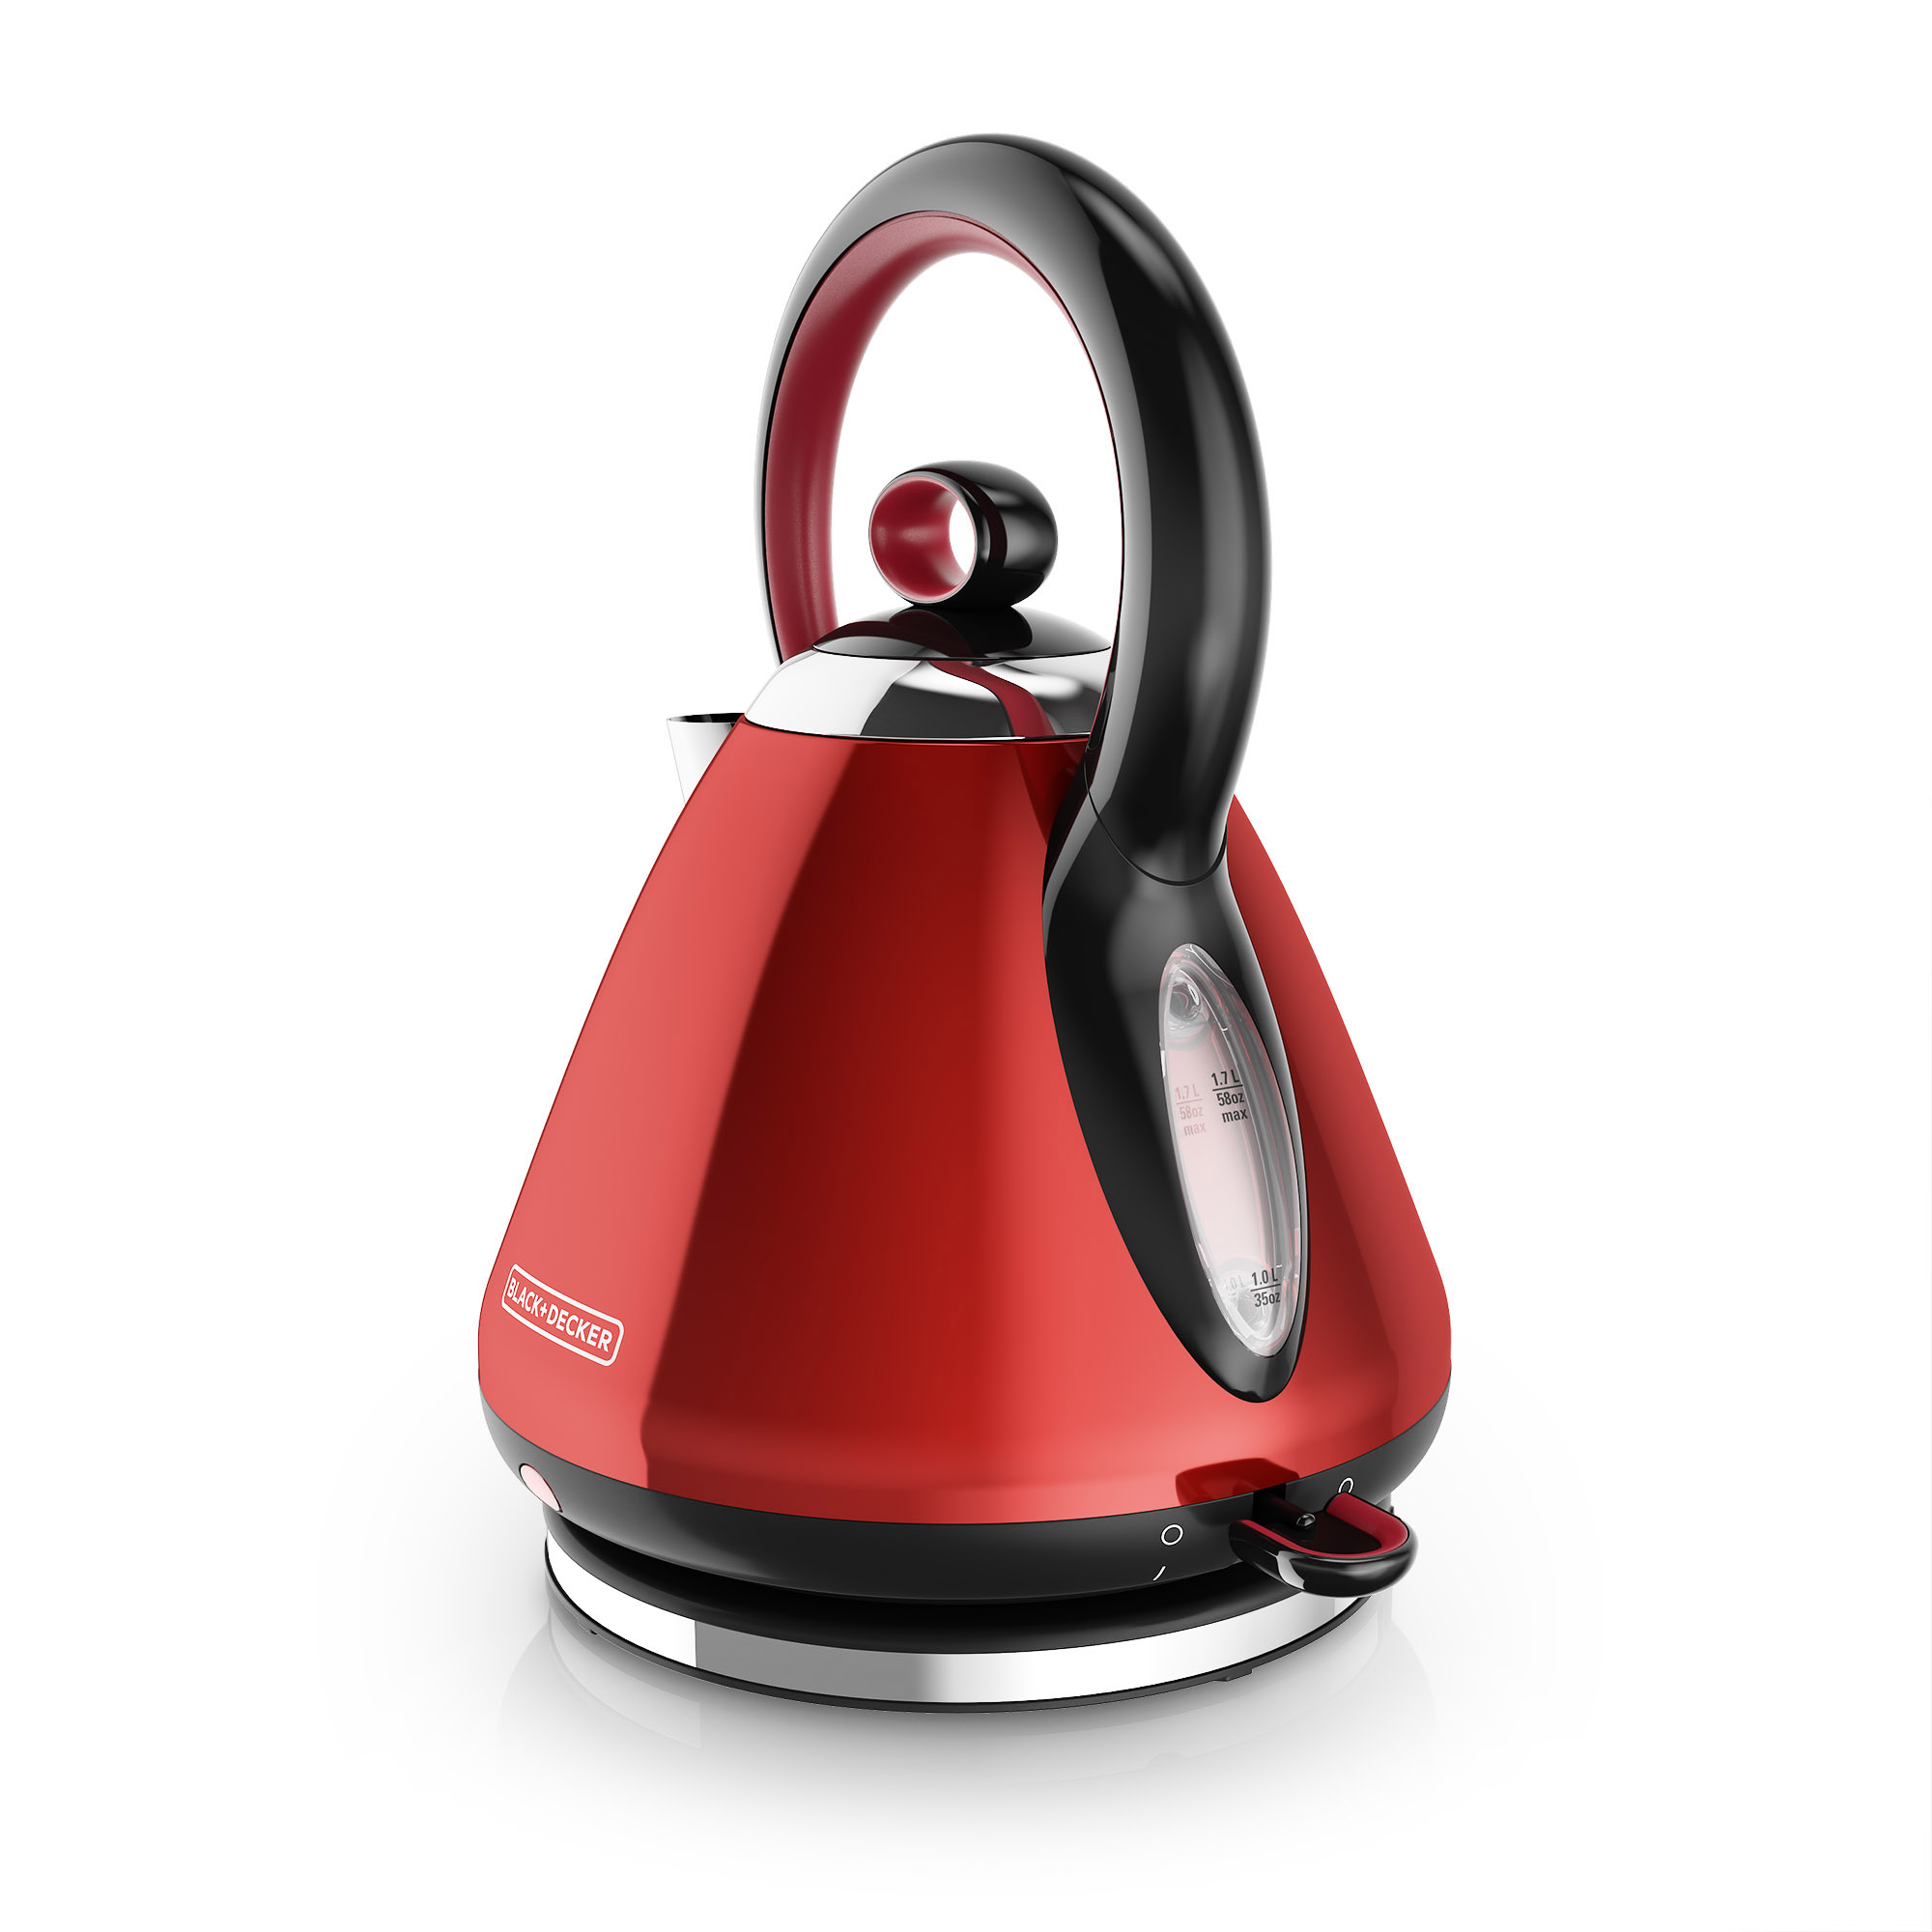 black+decker 1.7l stainless steel electric cordless kettle, red, ke2900r